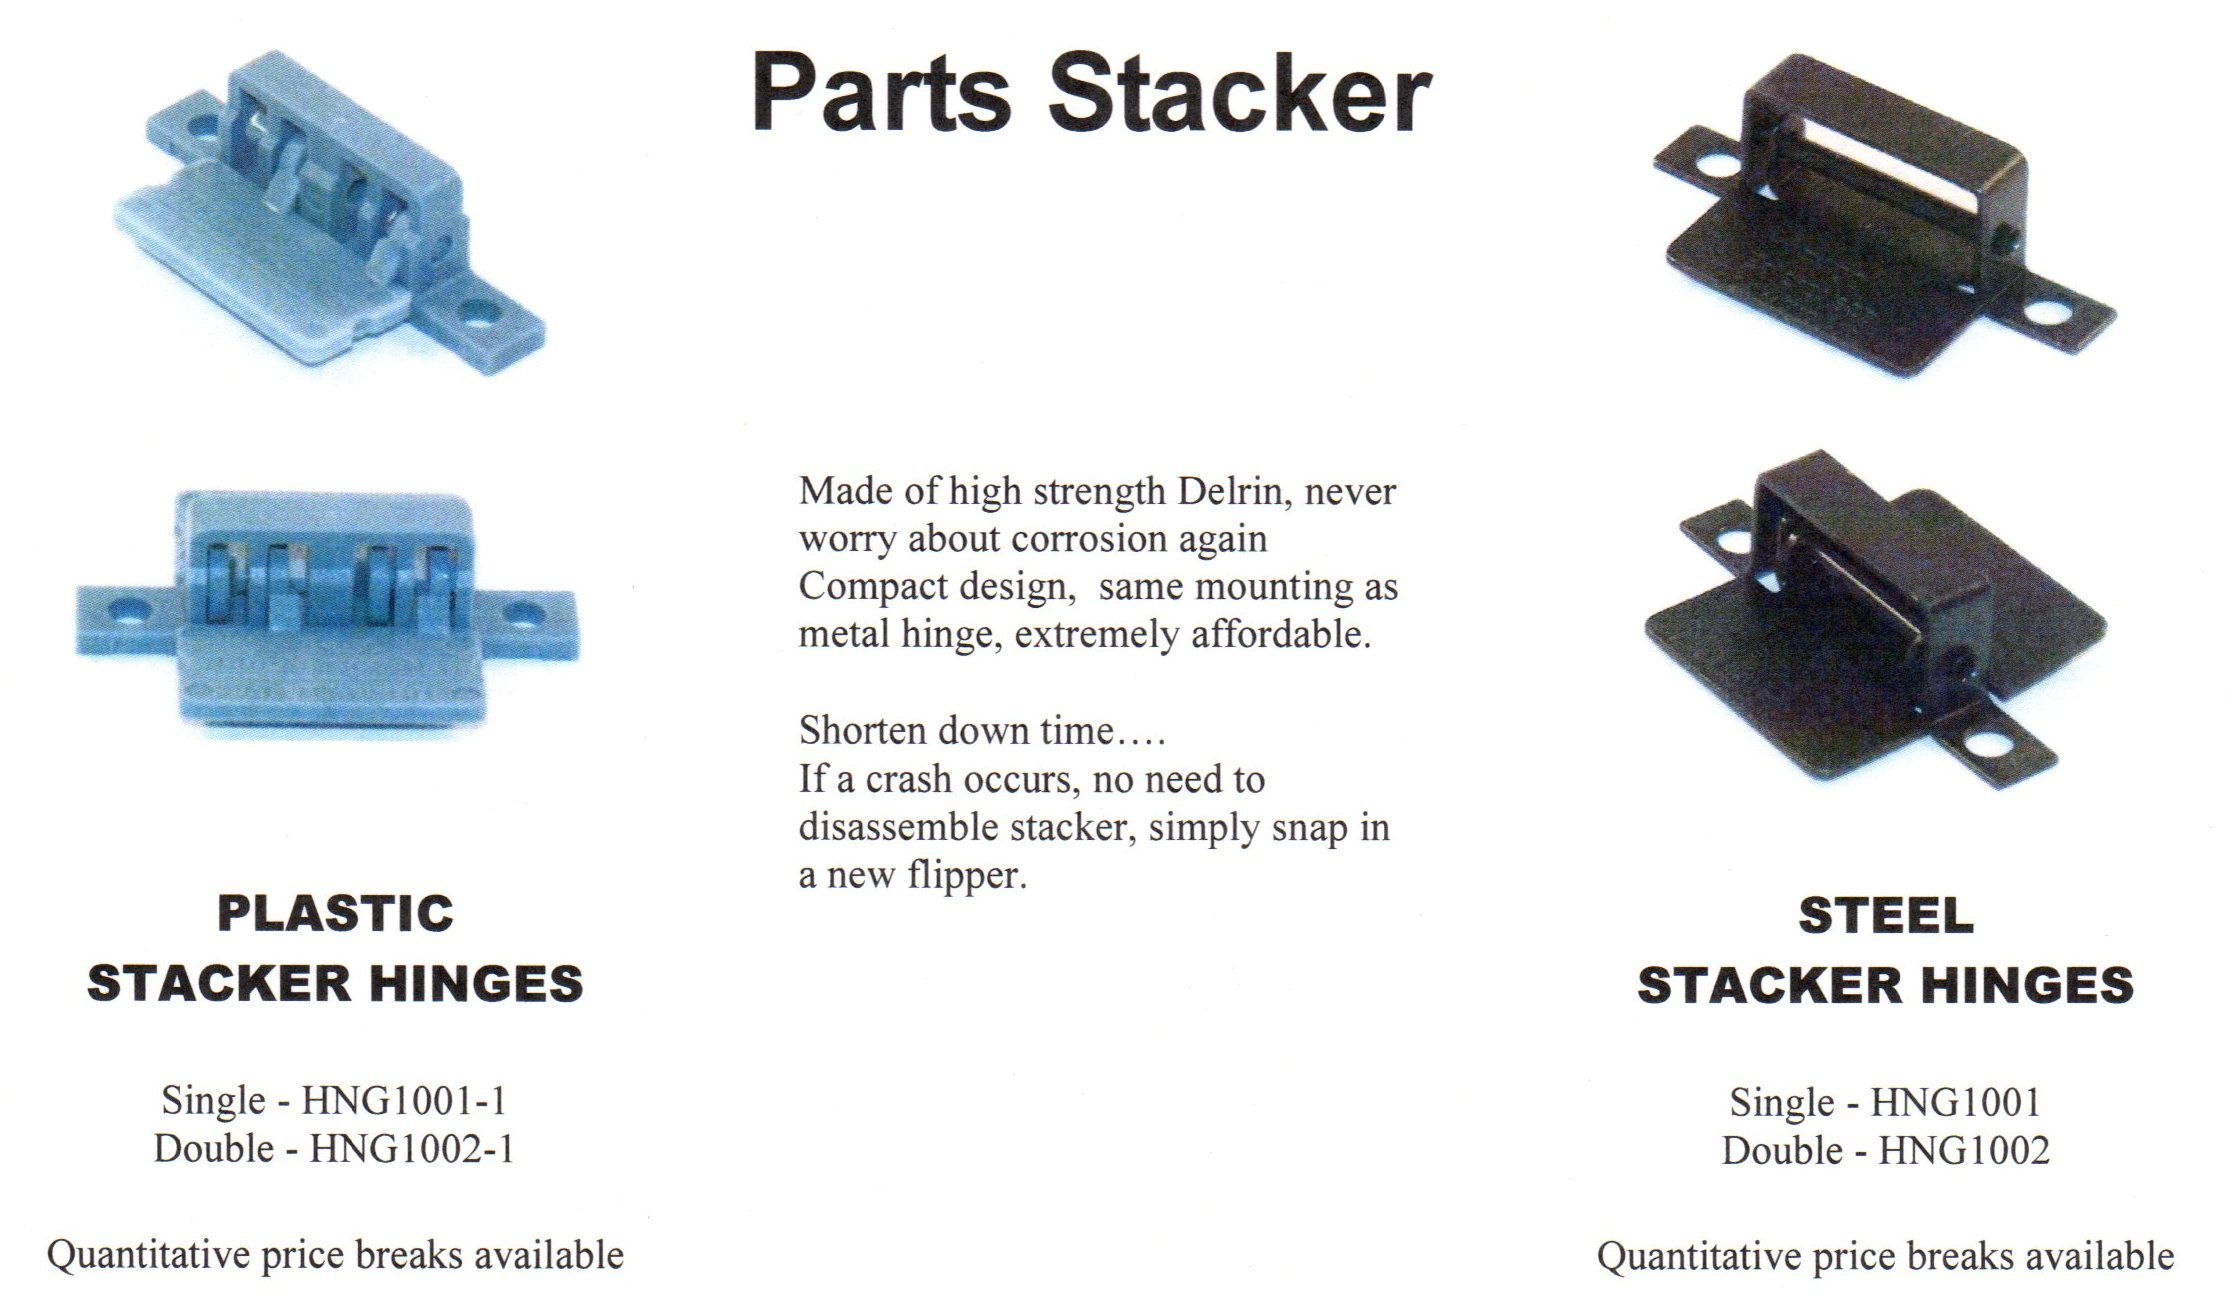 Parts Stacker